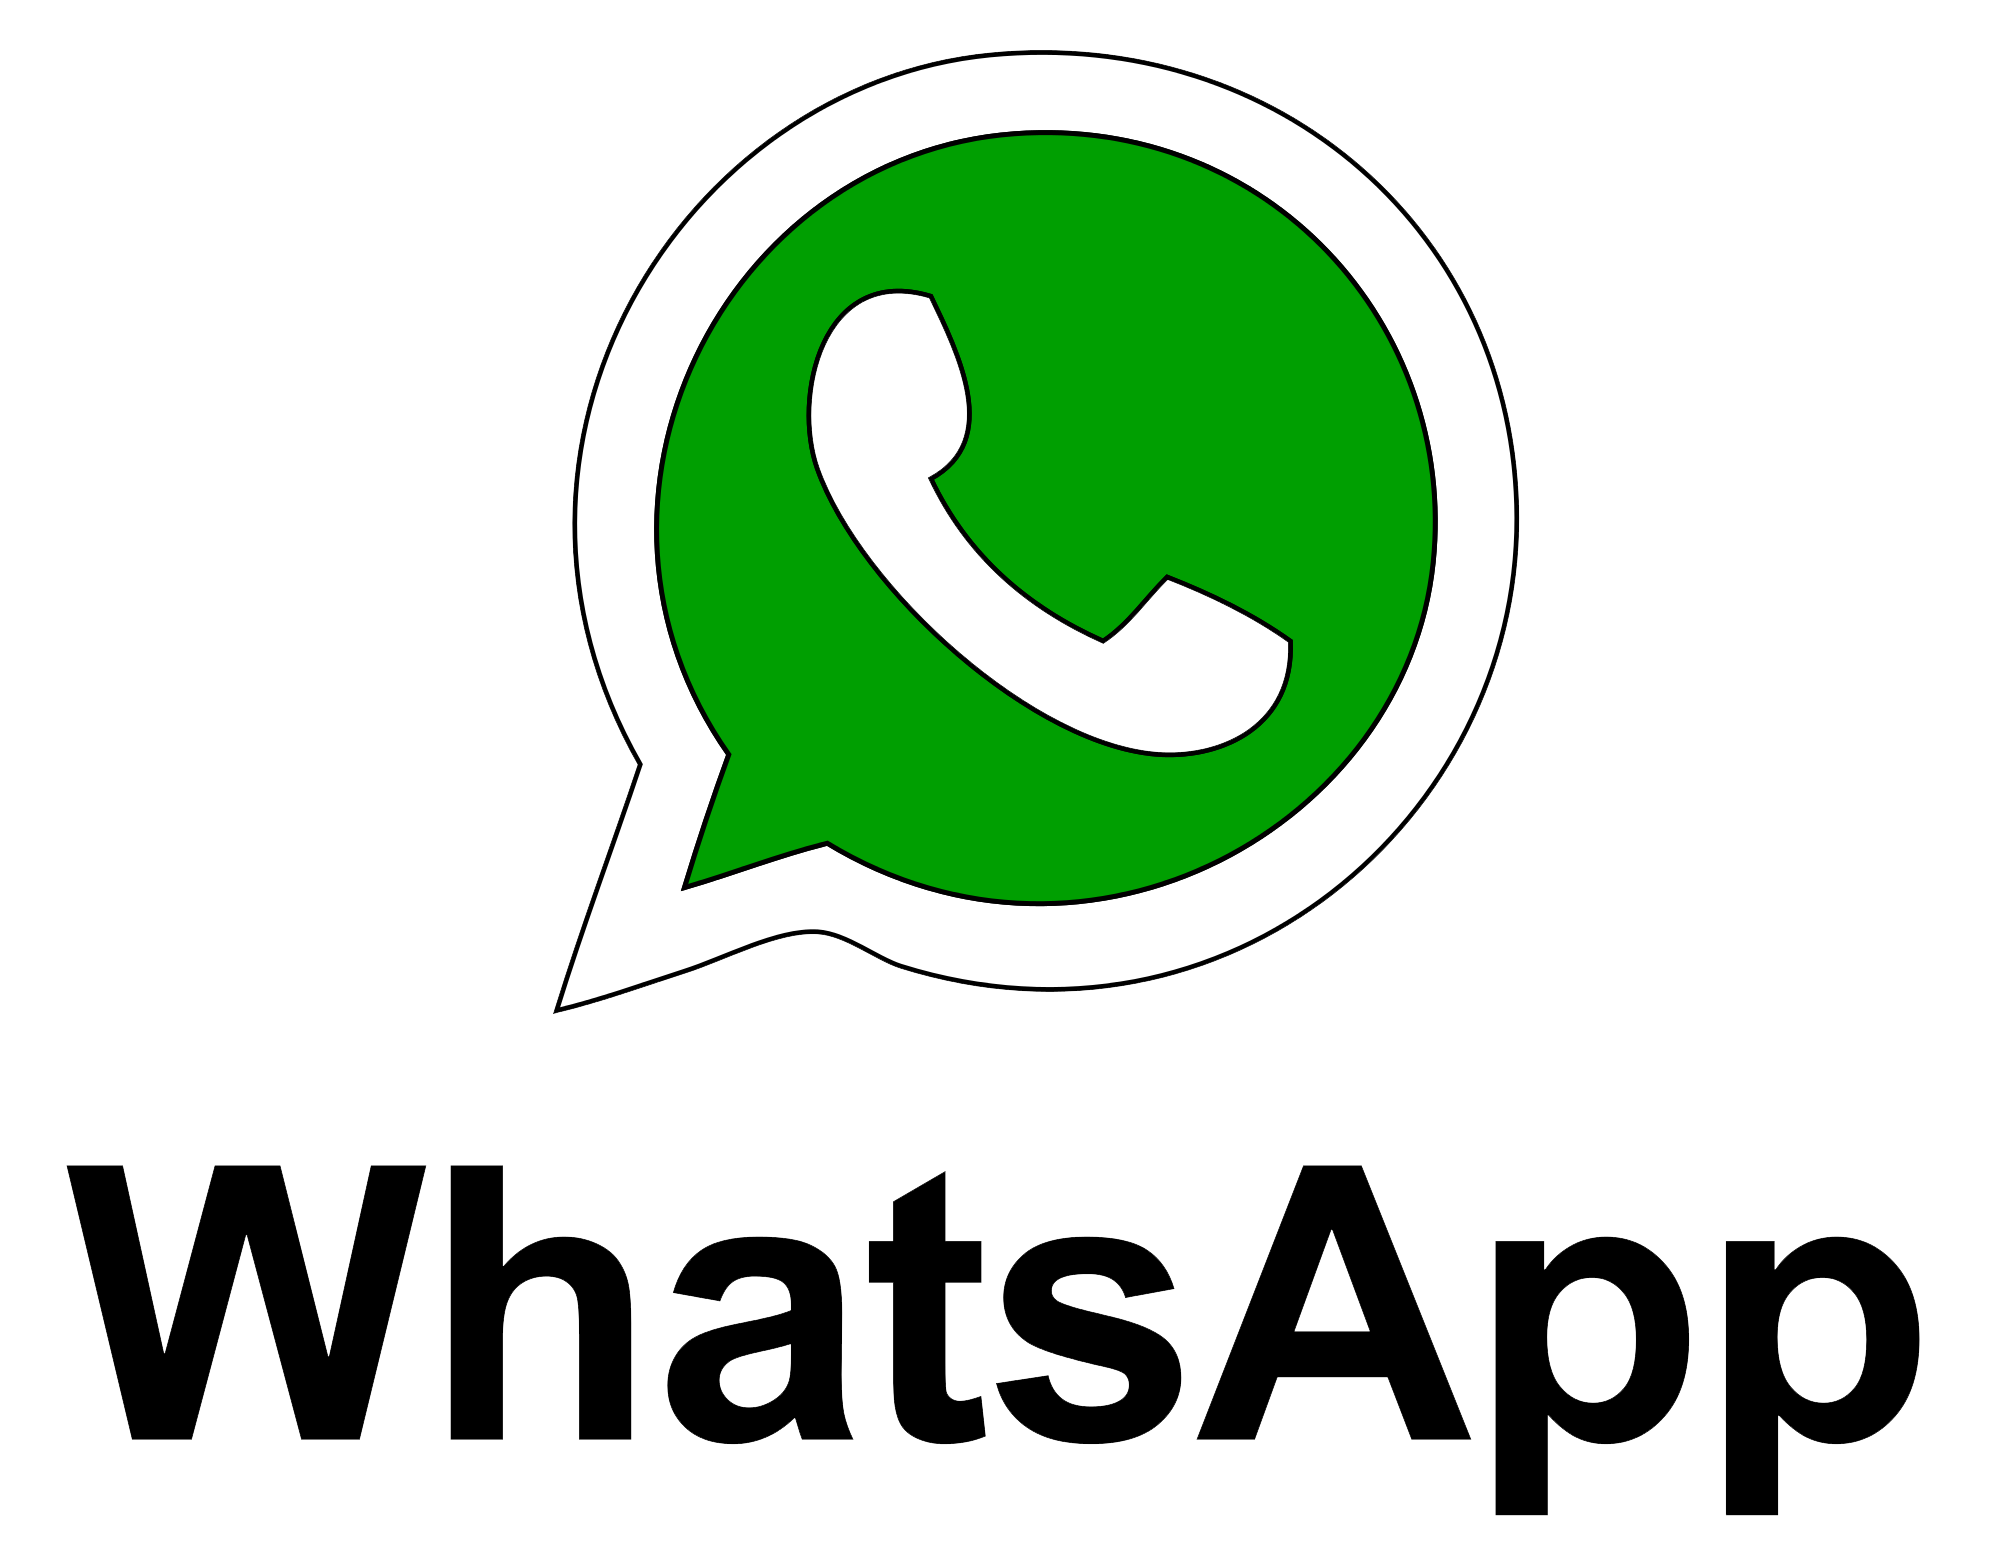 Whatsapp logo png transparent background. Images all image